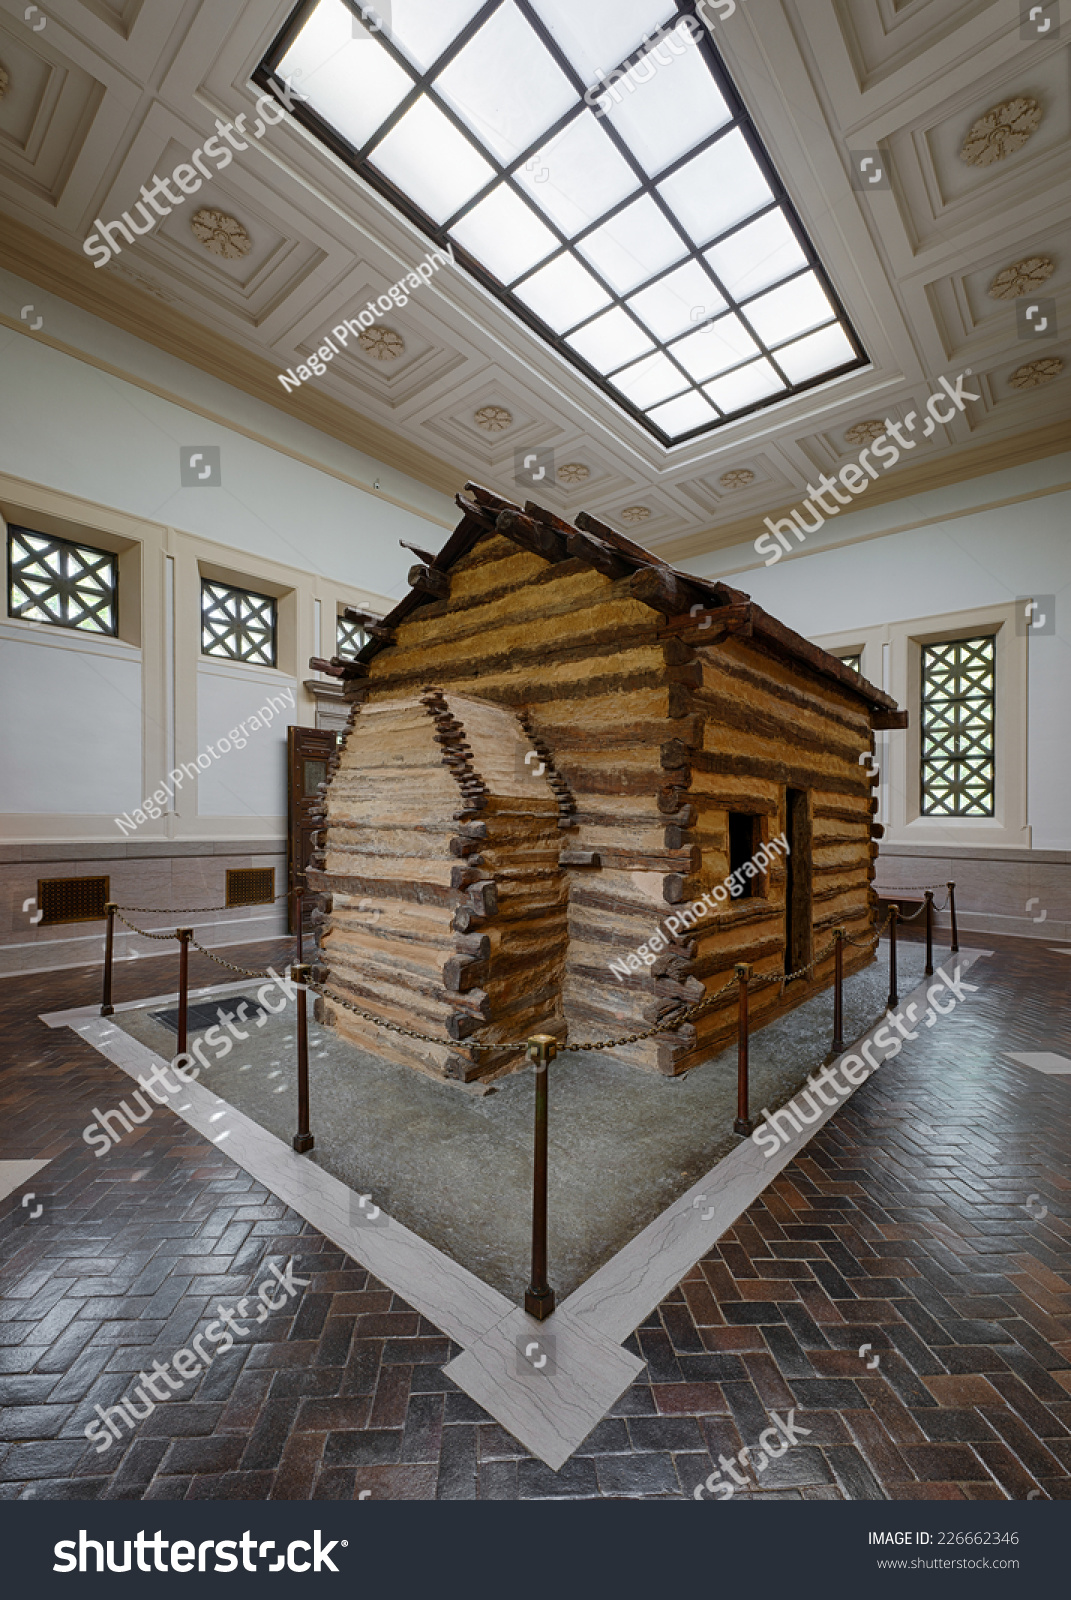 Very Impressive portraiture of   OCT 21: Log cabin inside the first Lincoln Memorial building  with #604933 color and 1071x1600 pixels